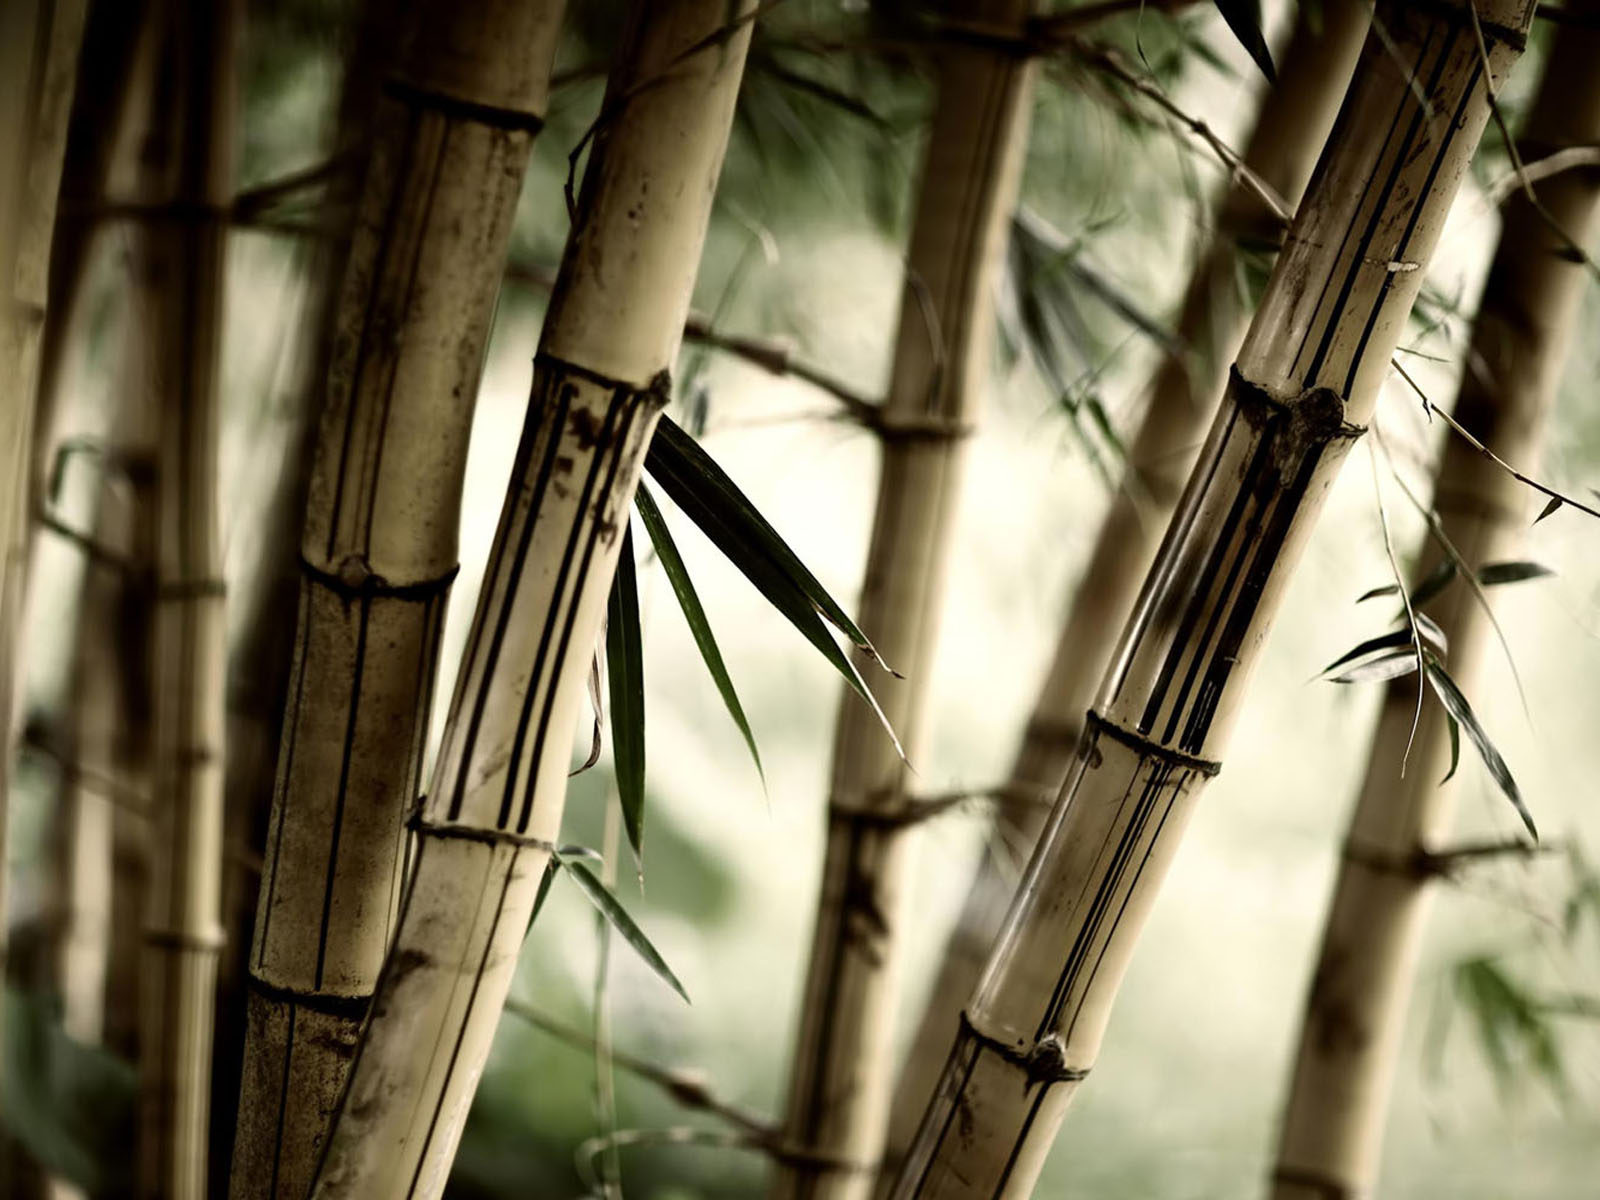 Wallpapers bamboo wallpapers for Bamboo mural wallpaper